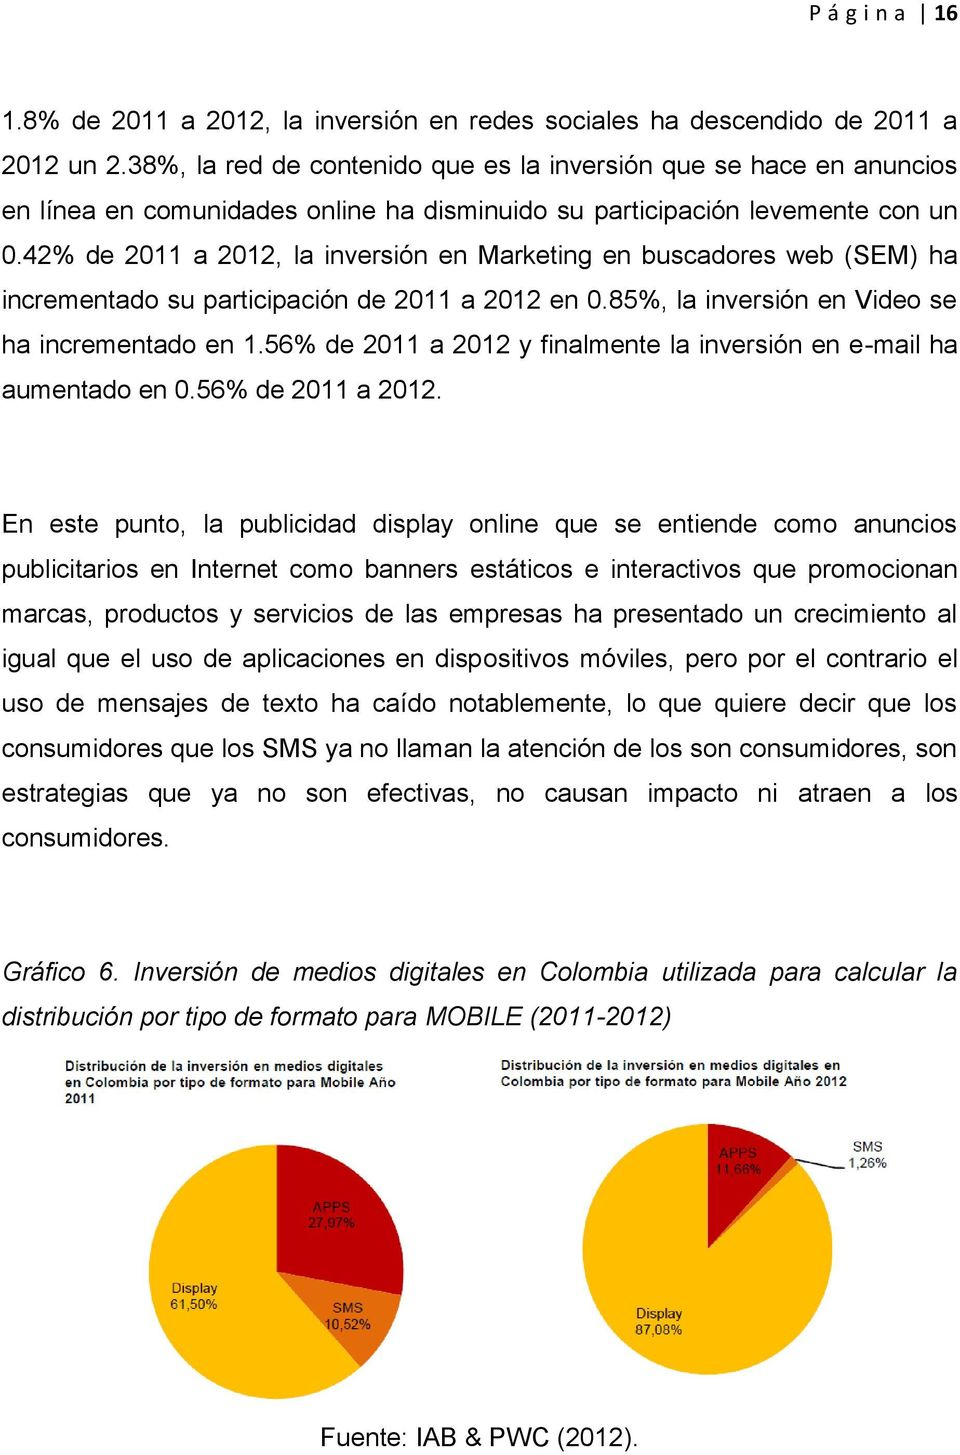 42% de 2011 a 2012, la inversión en Marketing en buscadores web (SEM) ha incrementado su participación de 2011 a 2012 en 0.85%, la inversión en Video se ha incrementado en 1.